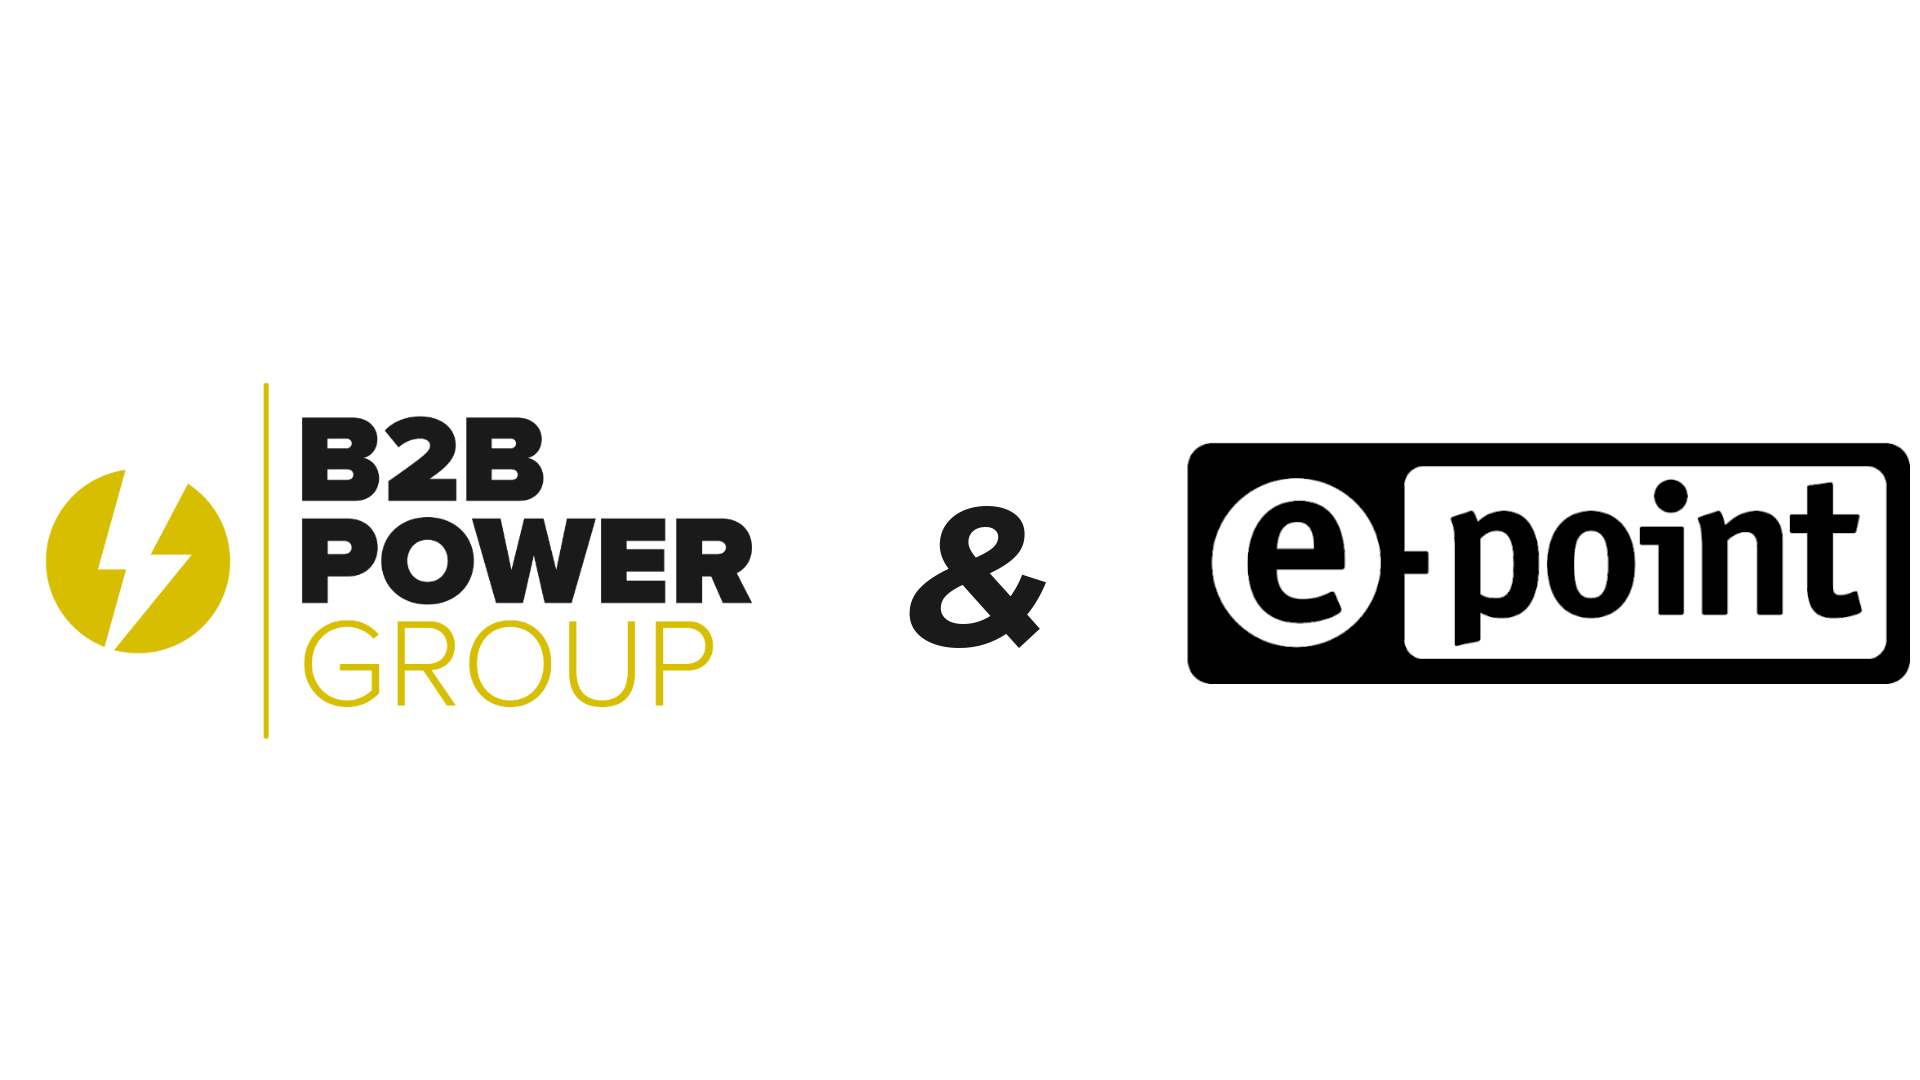 logo-epoint-i-b2bpower-group